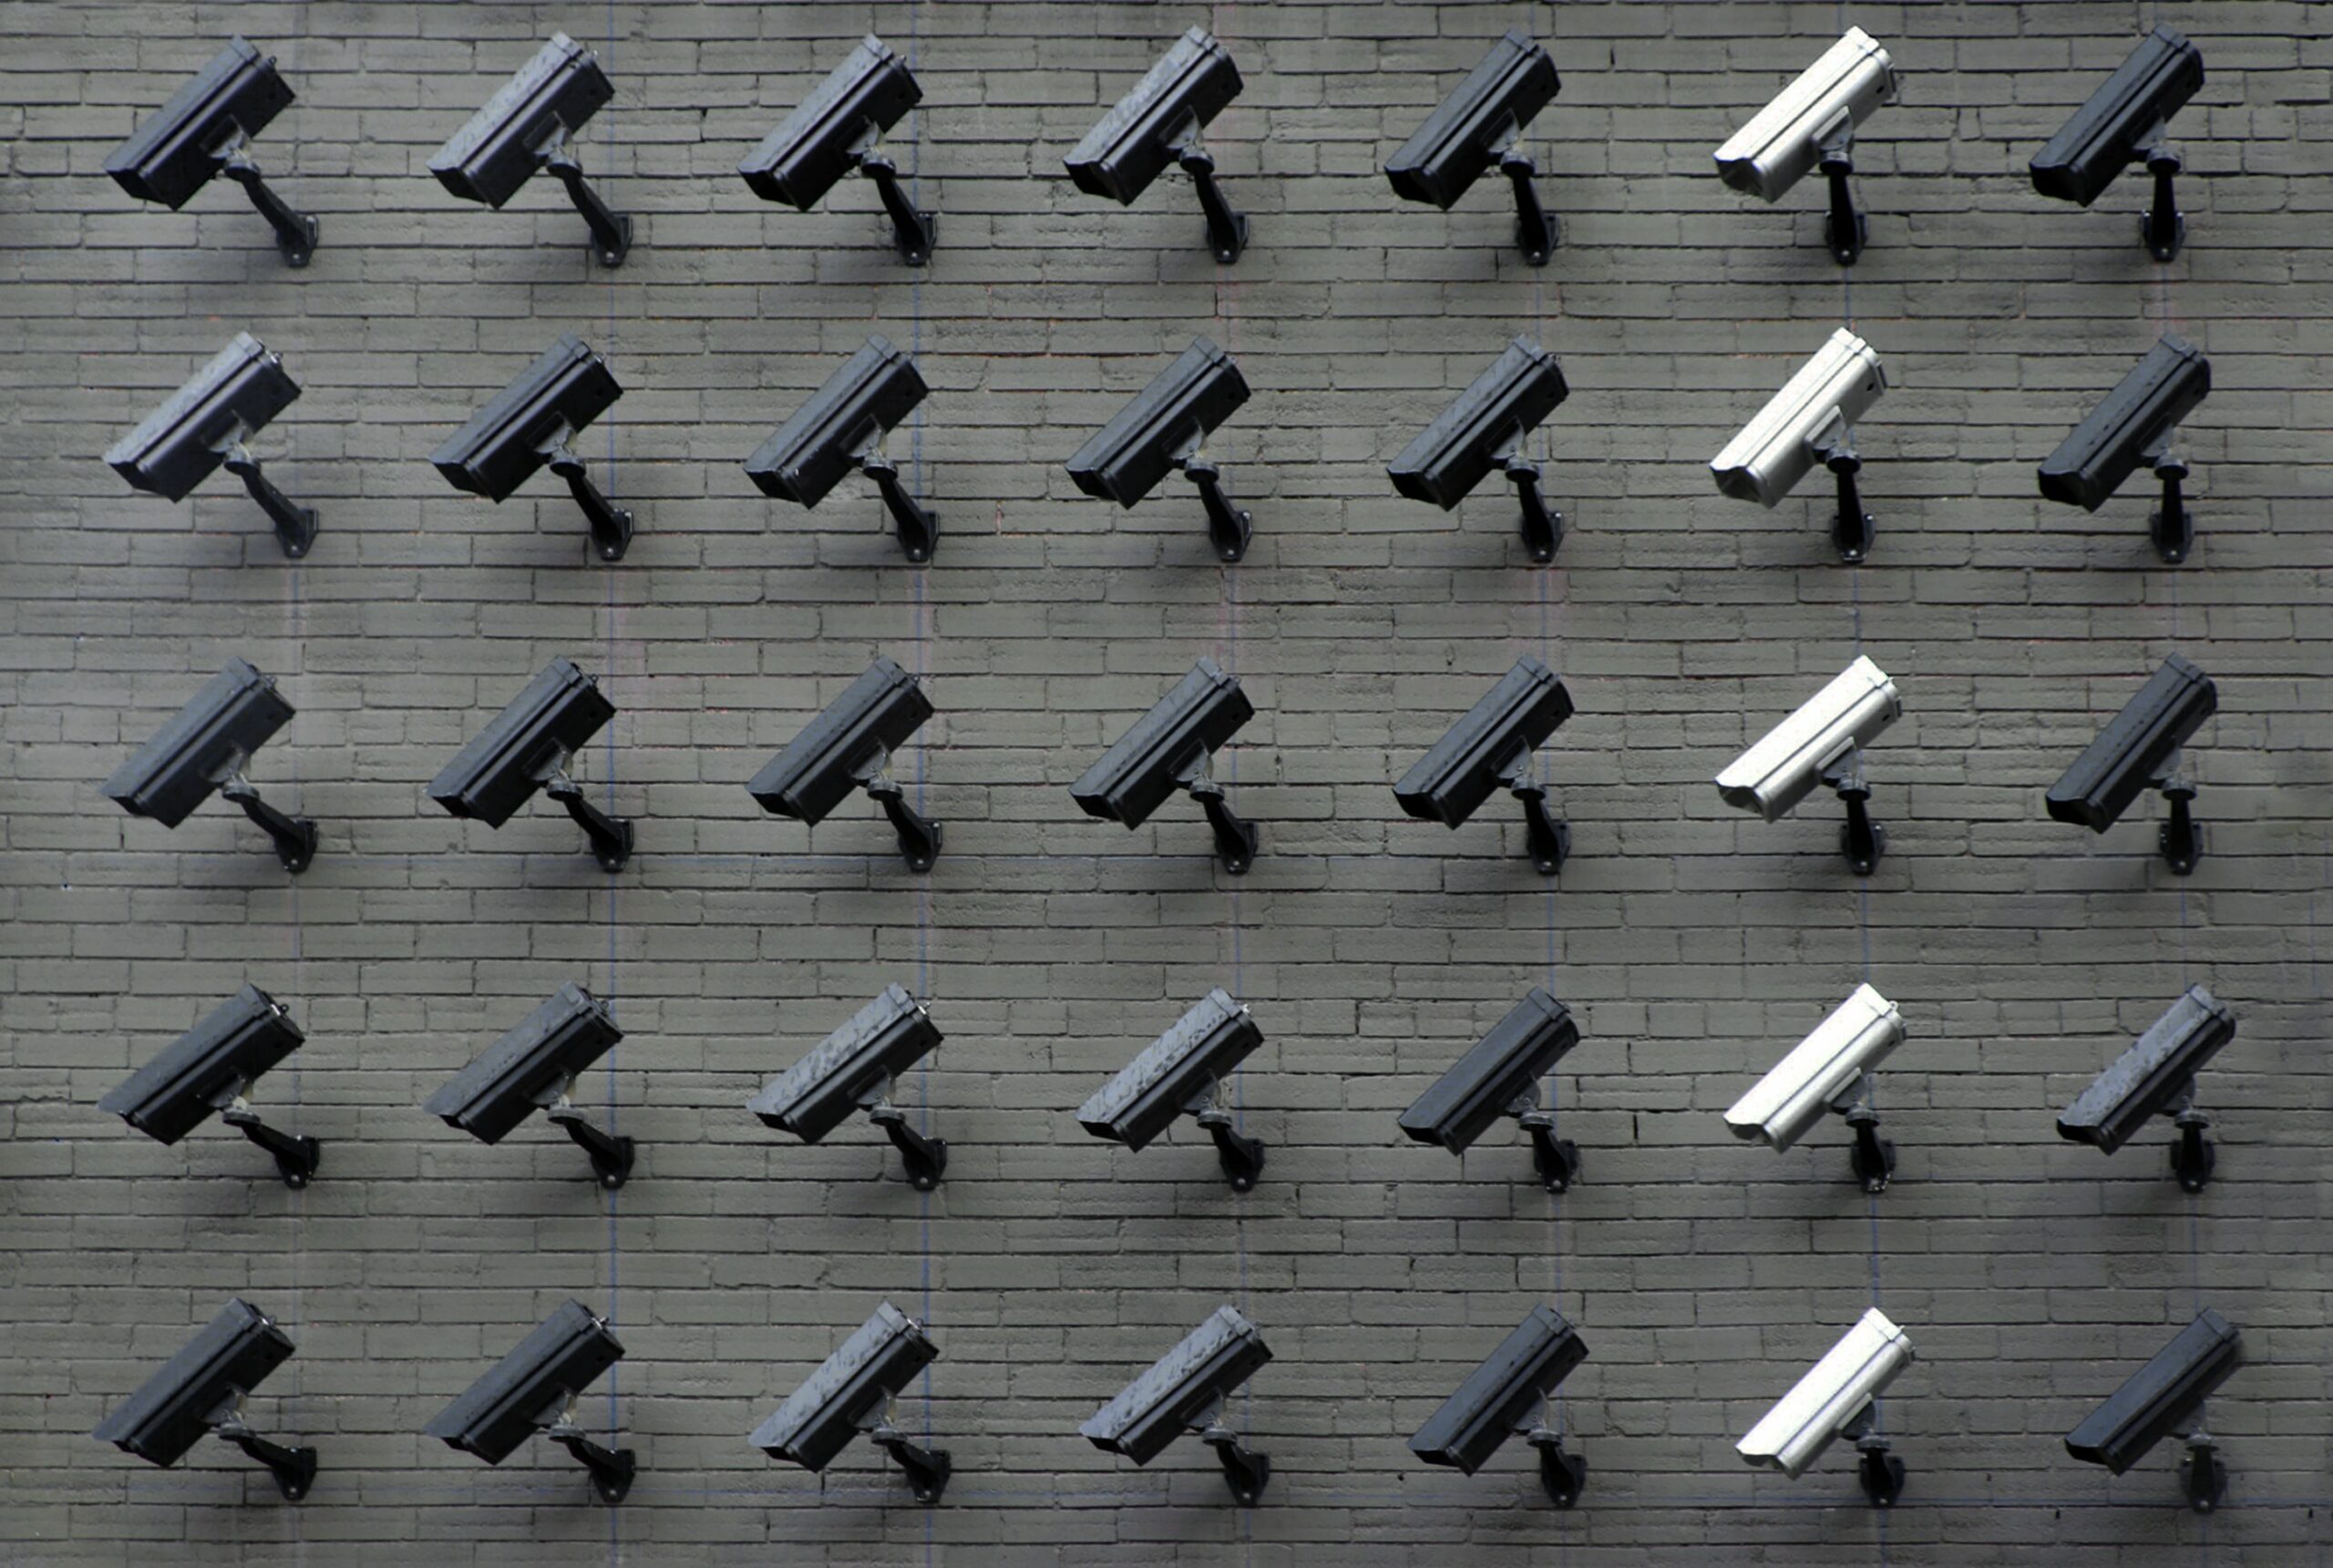 Assorted Security Cameras on a Wall